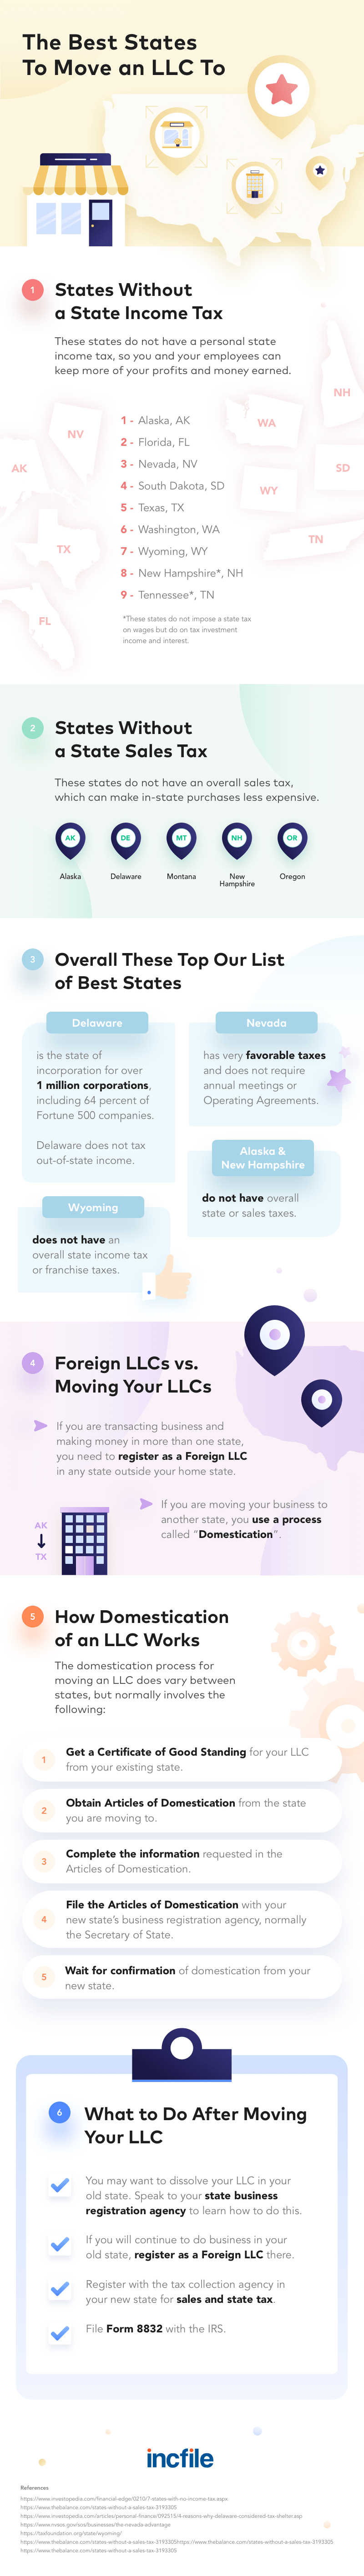 The best states for moving your LLC infographic